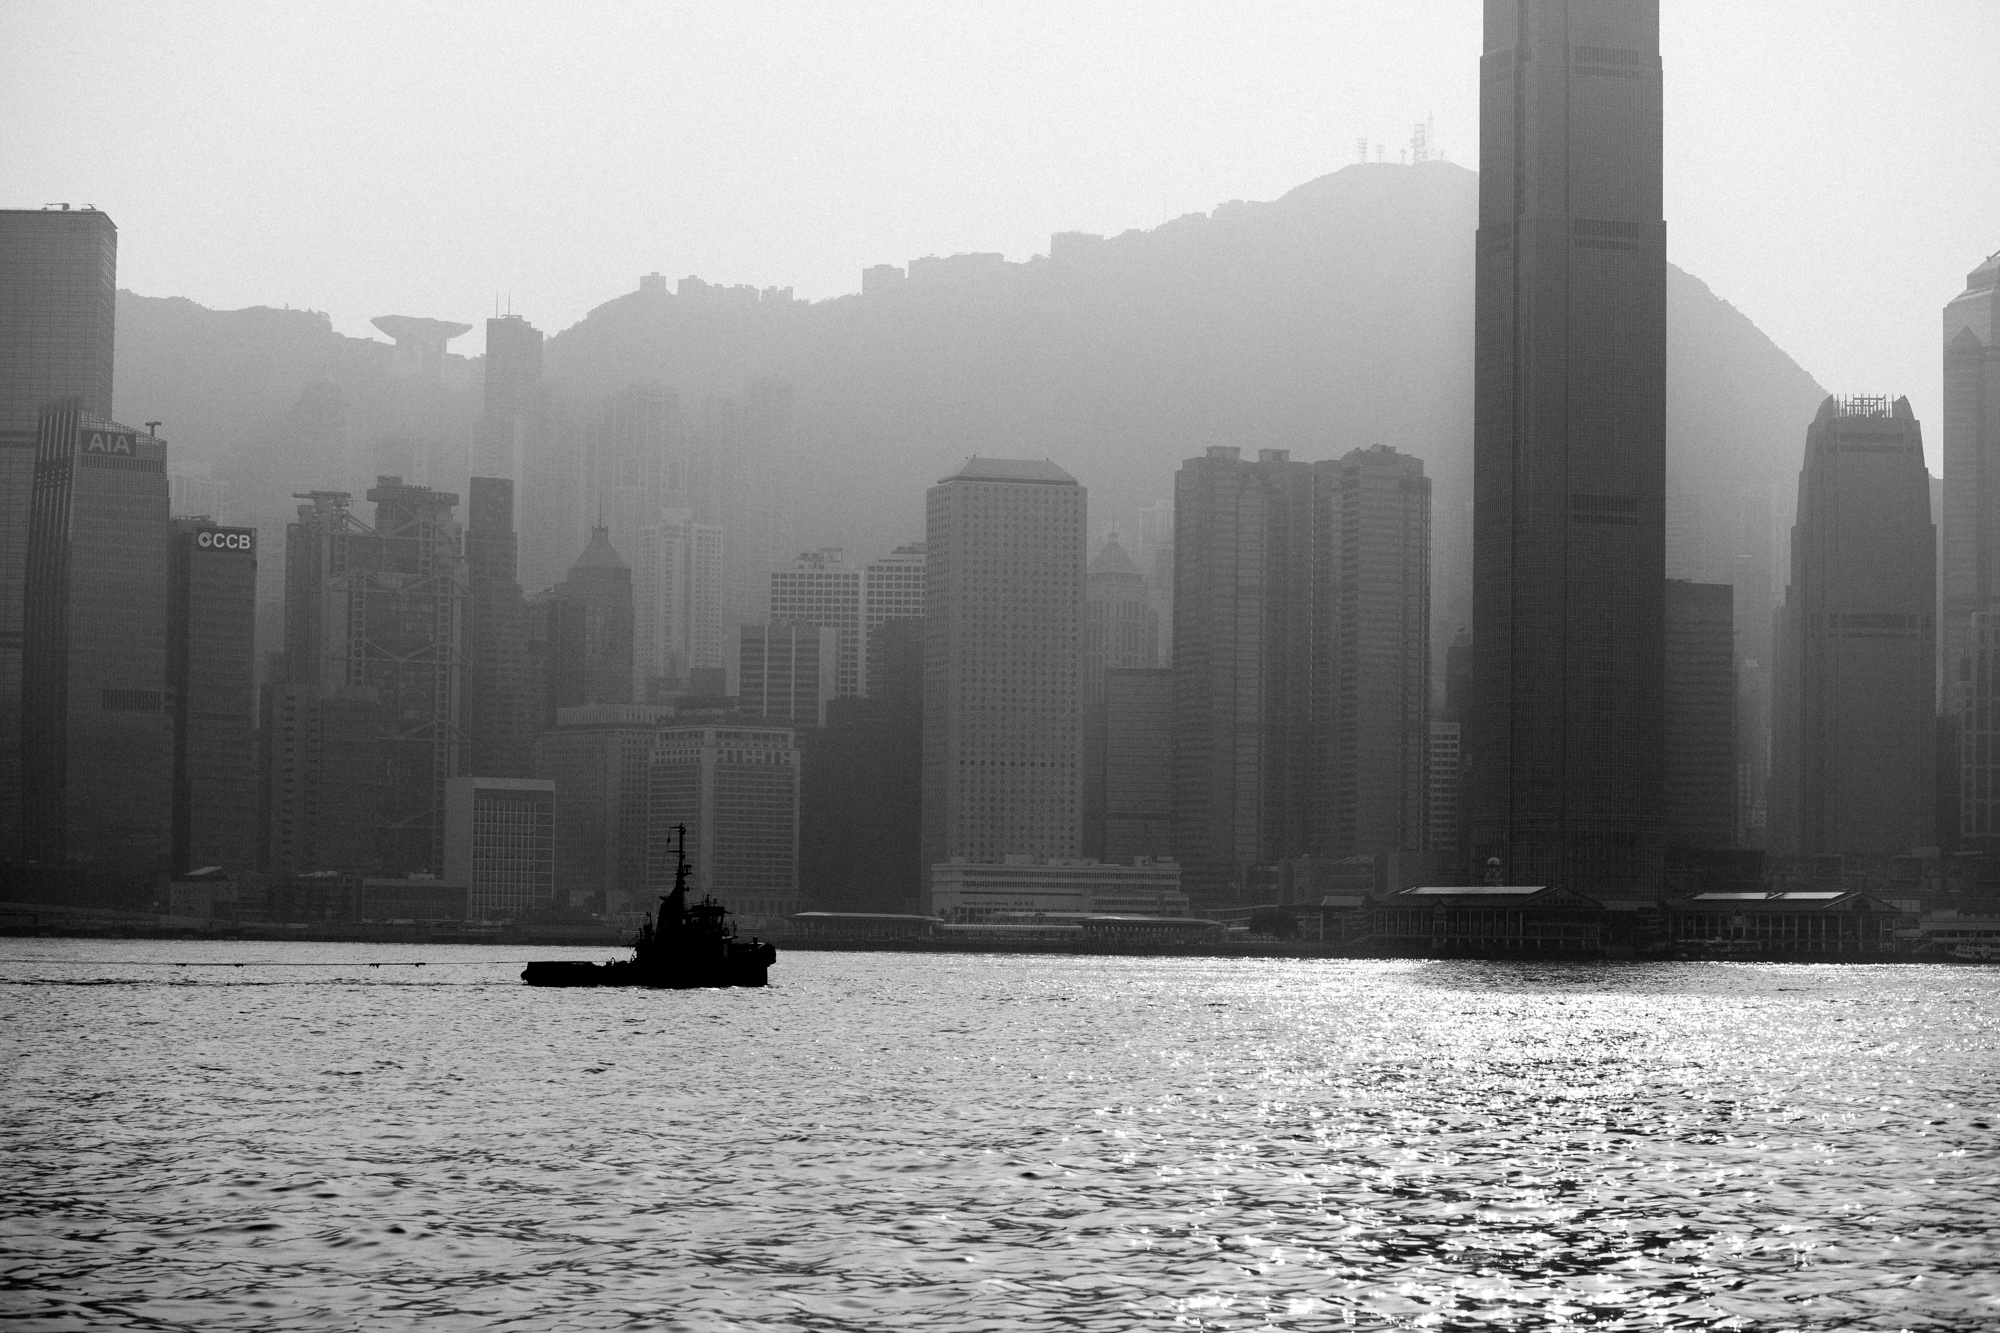 Between Hong Kong Island and Kowloon is Victoria Harbour, where hundreds of vessels traverse each year.